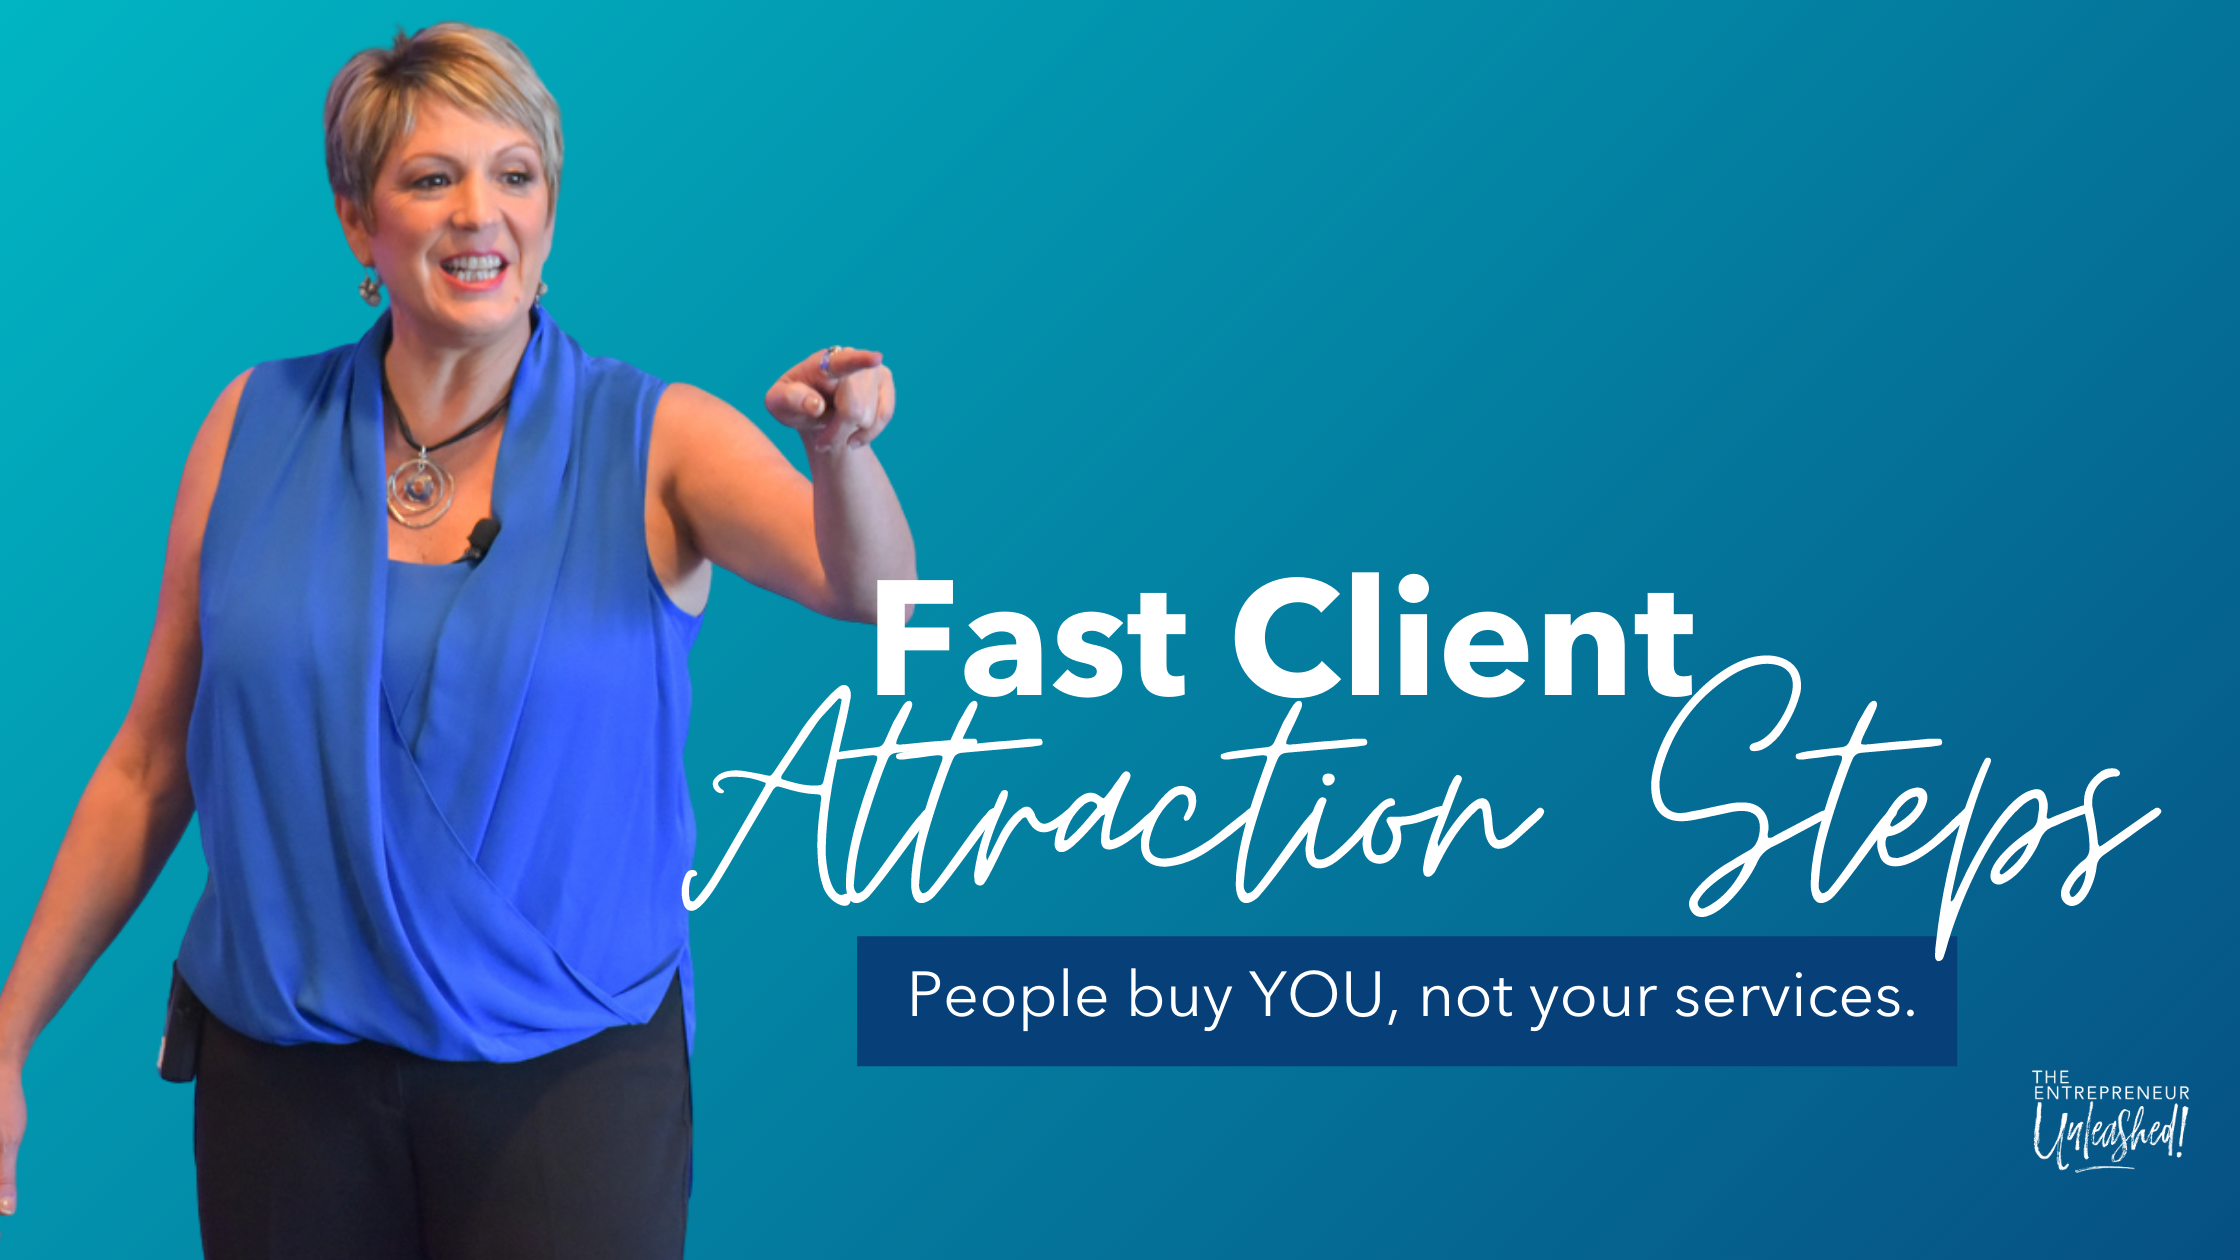 Fast Client Attraction Steps